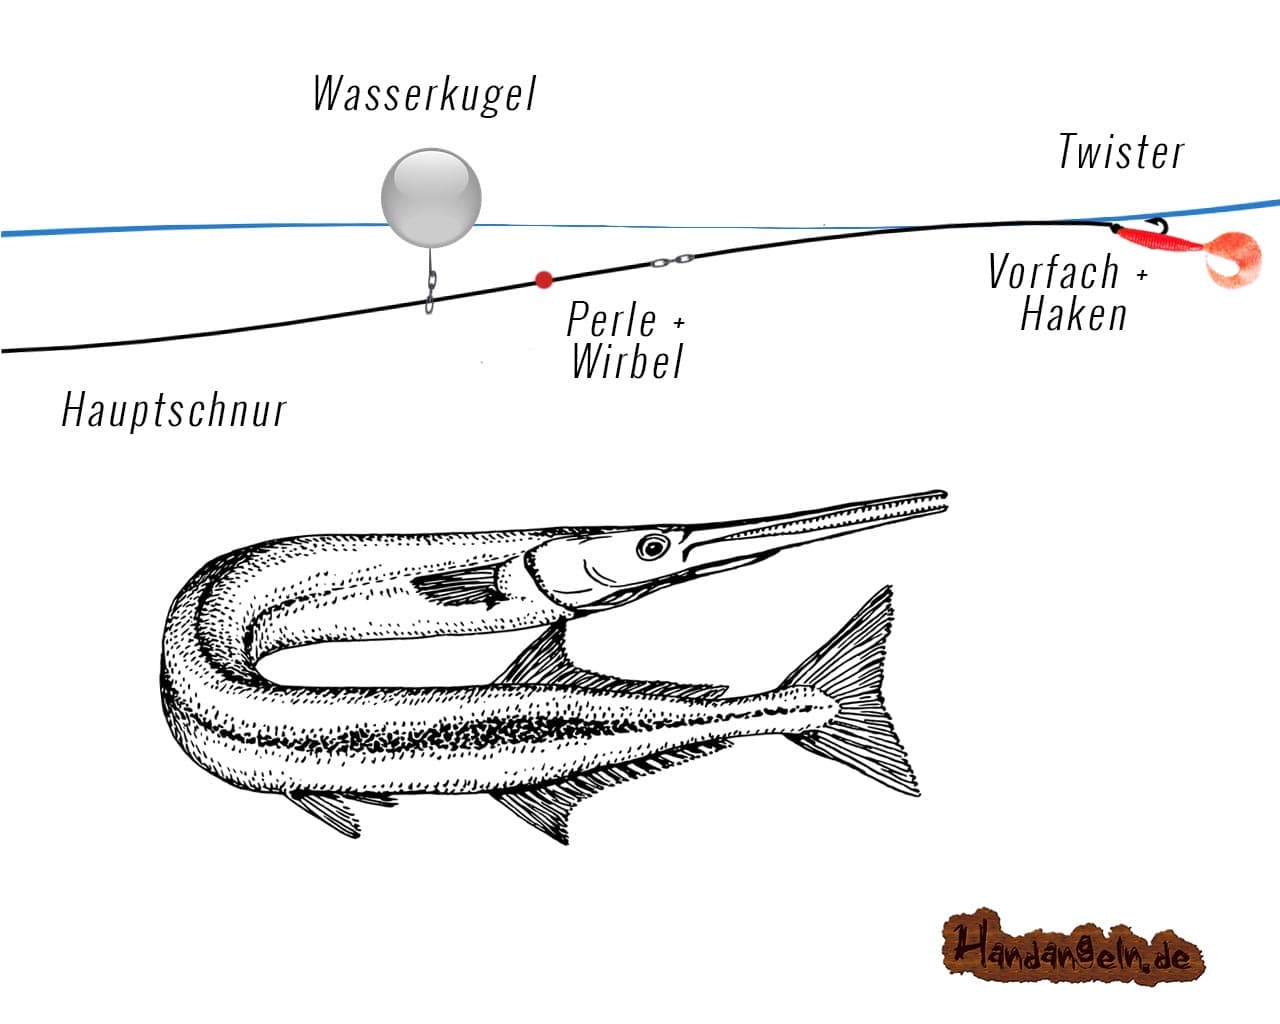 Illustration Wasserkugel Montage Hornhecht Garfish Belonidae